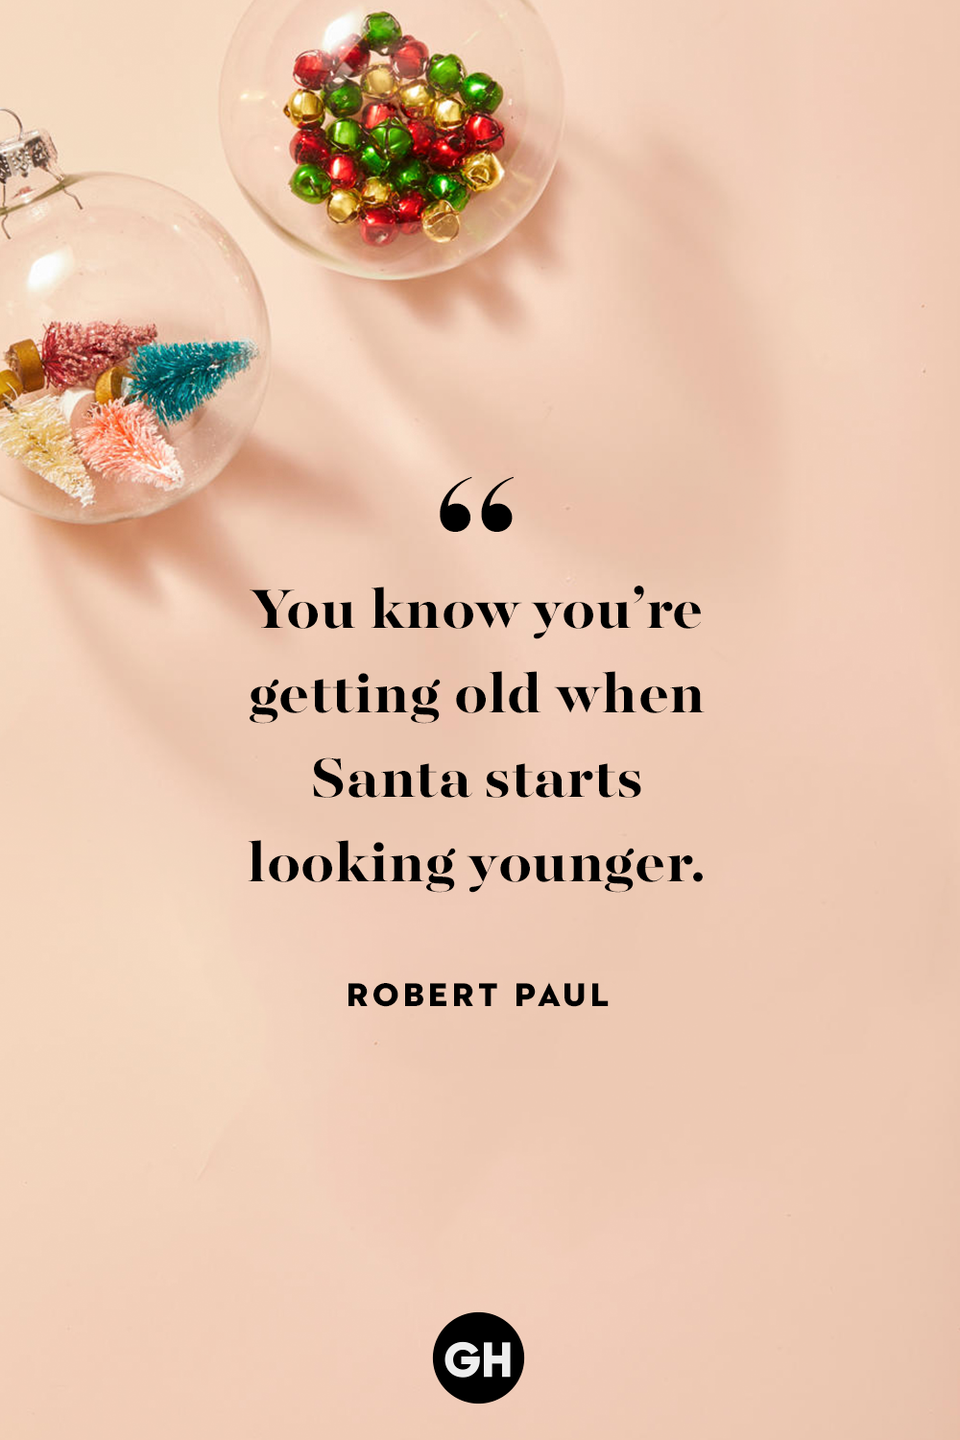 <p>You know you're getting old when Santa starts looking younger.</p>